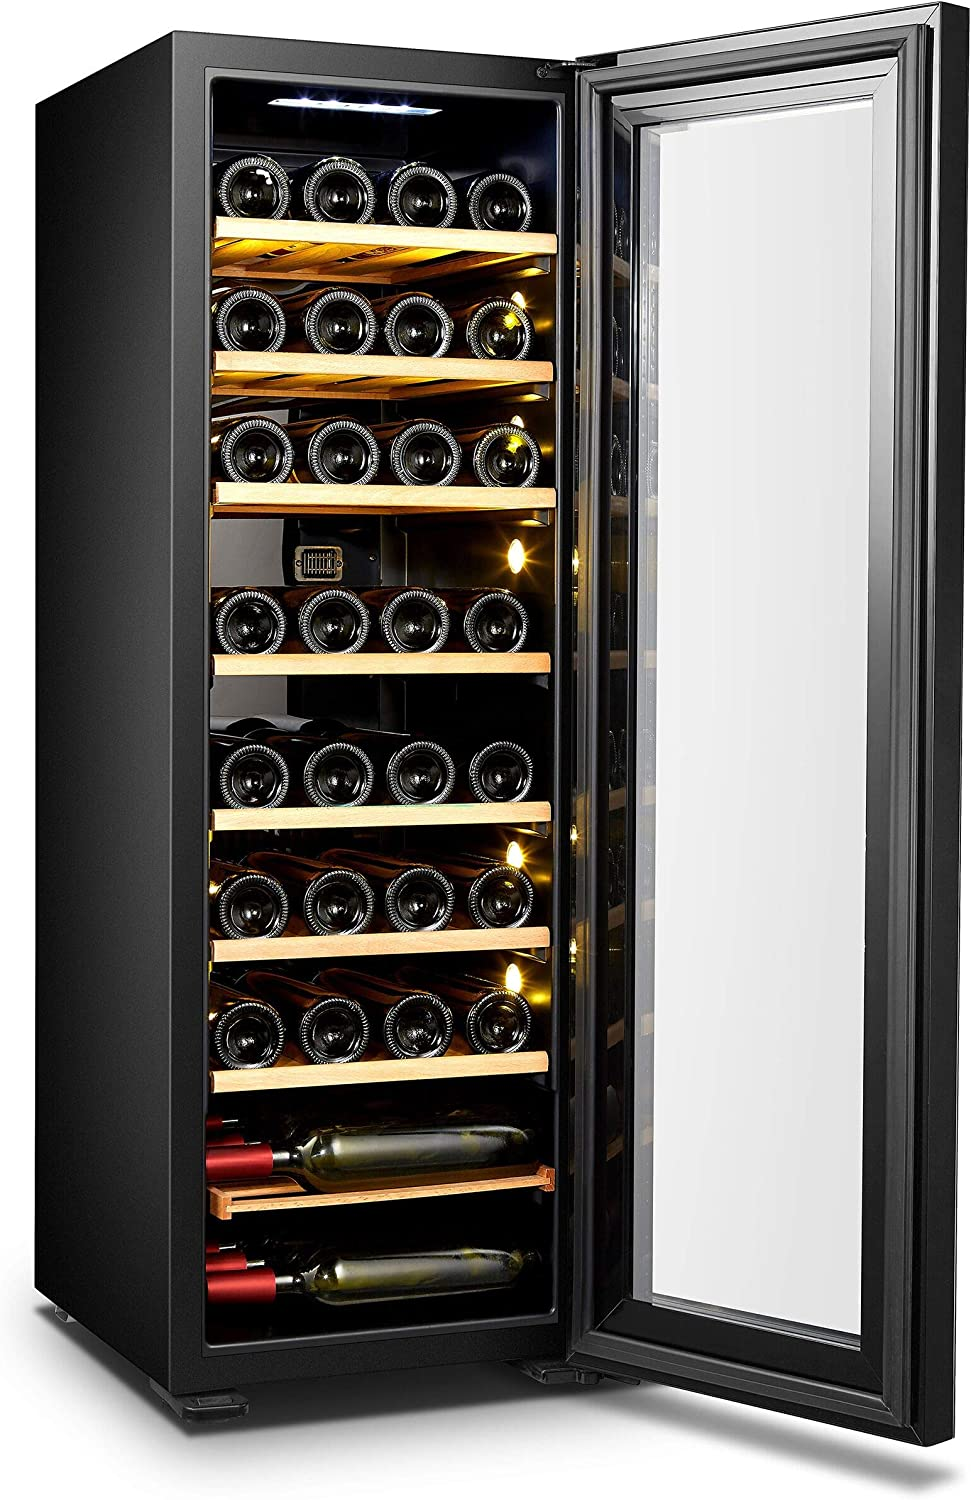 Ice Master Wine Cooler and Drinks Fridge with Wooden Shelves a Tempered Glass Door Interior LED Lights 34 Bottles//116L Capacity Soft Touch Control Panel Metal Cabinet